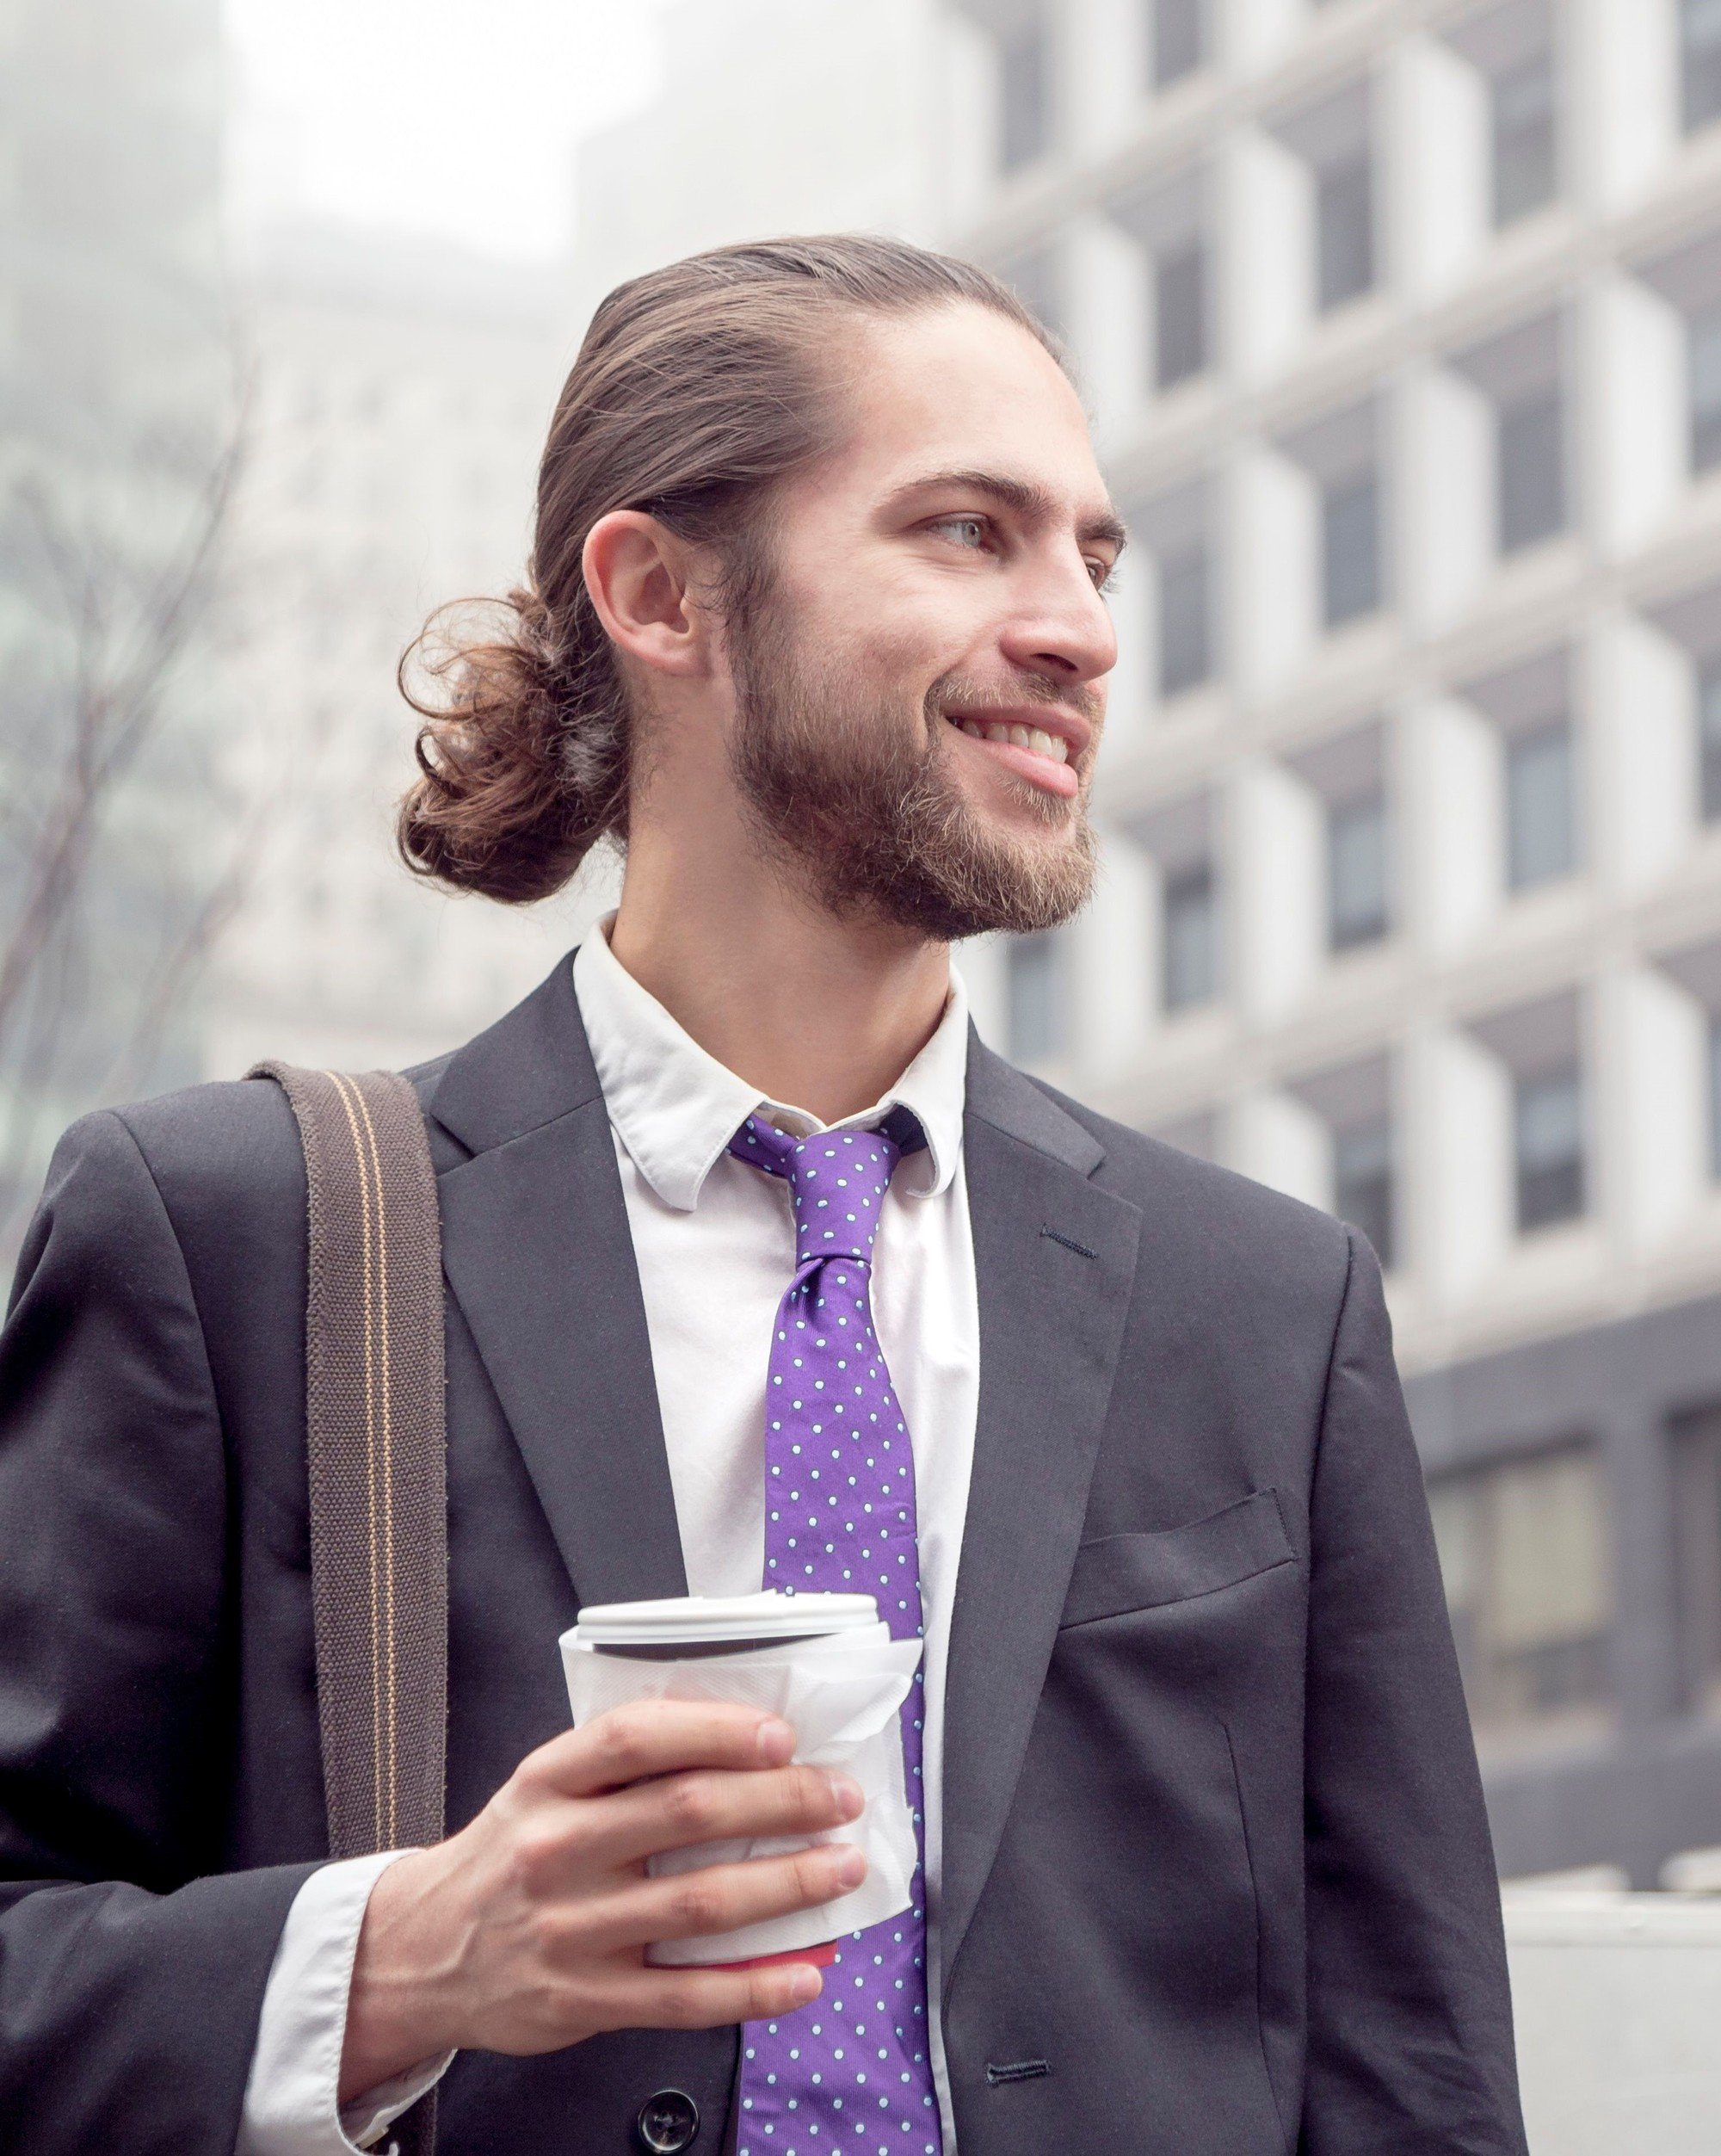 Shot of a brown haired man with a low man bun hairstyle with a beard, dressed in a suit and purple tie and holding a coffee cup